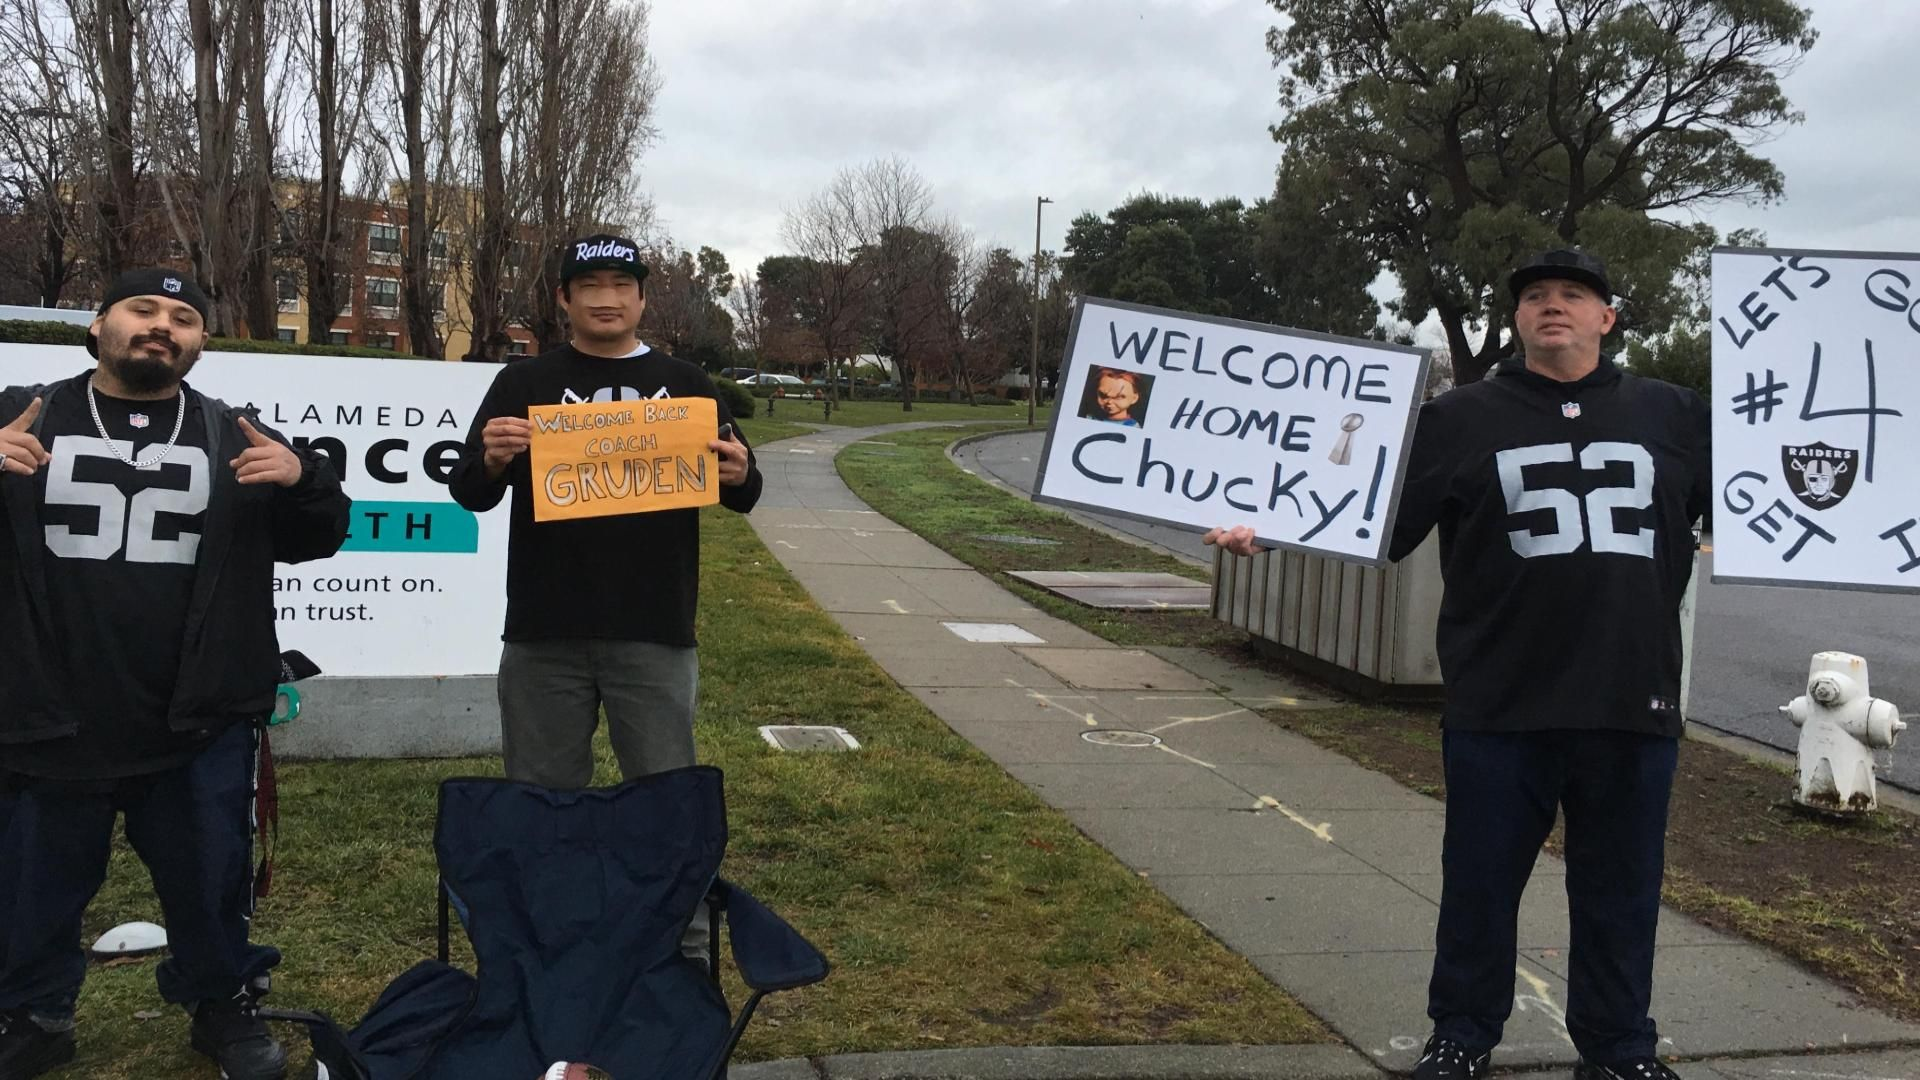 Excited fans greet coach Gruden upon return to Oakland